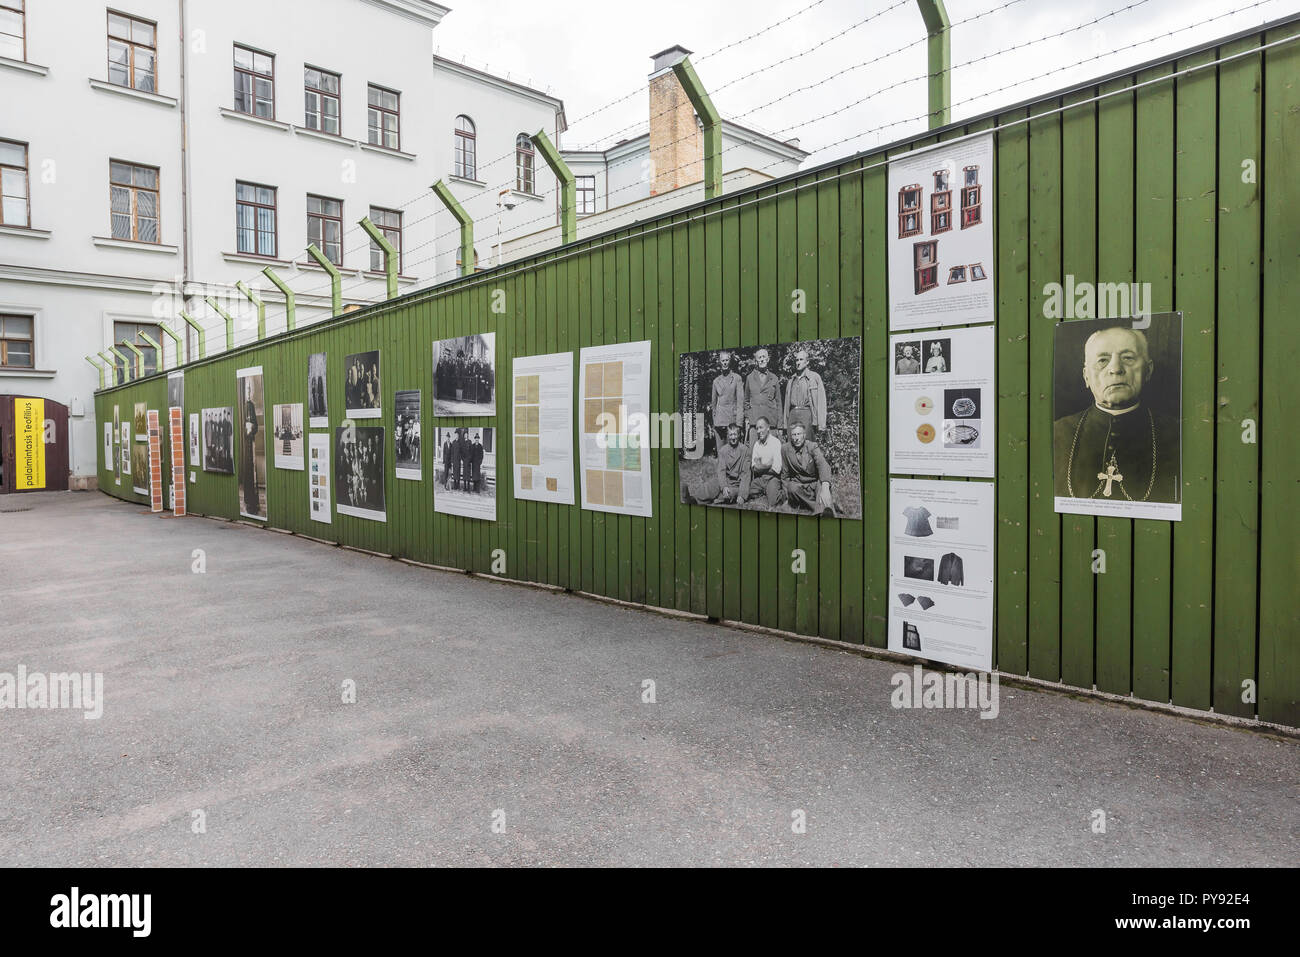 Genocide museum Vilnius,display in the former prison yard of the Museum of Genocide Victims showing Lithuanian clergy exiled to Siberia by the Soviets. - Stock Image